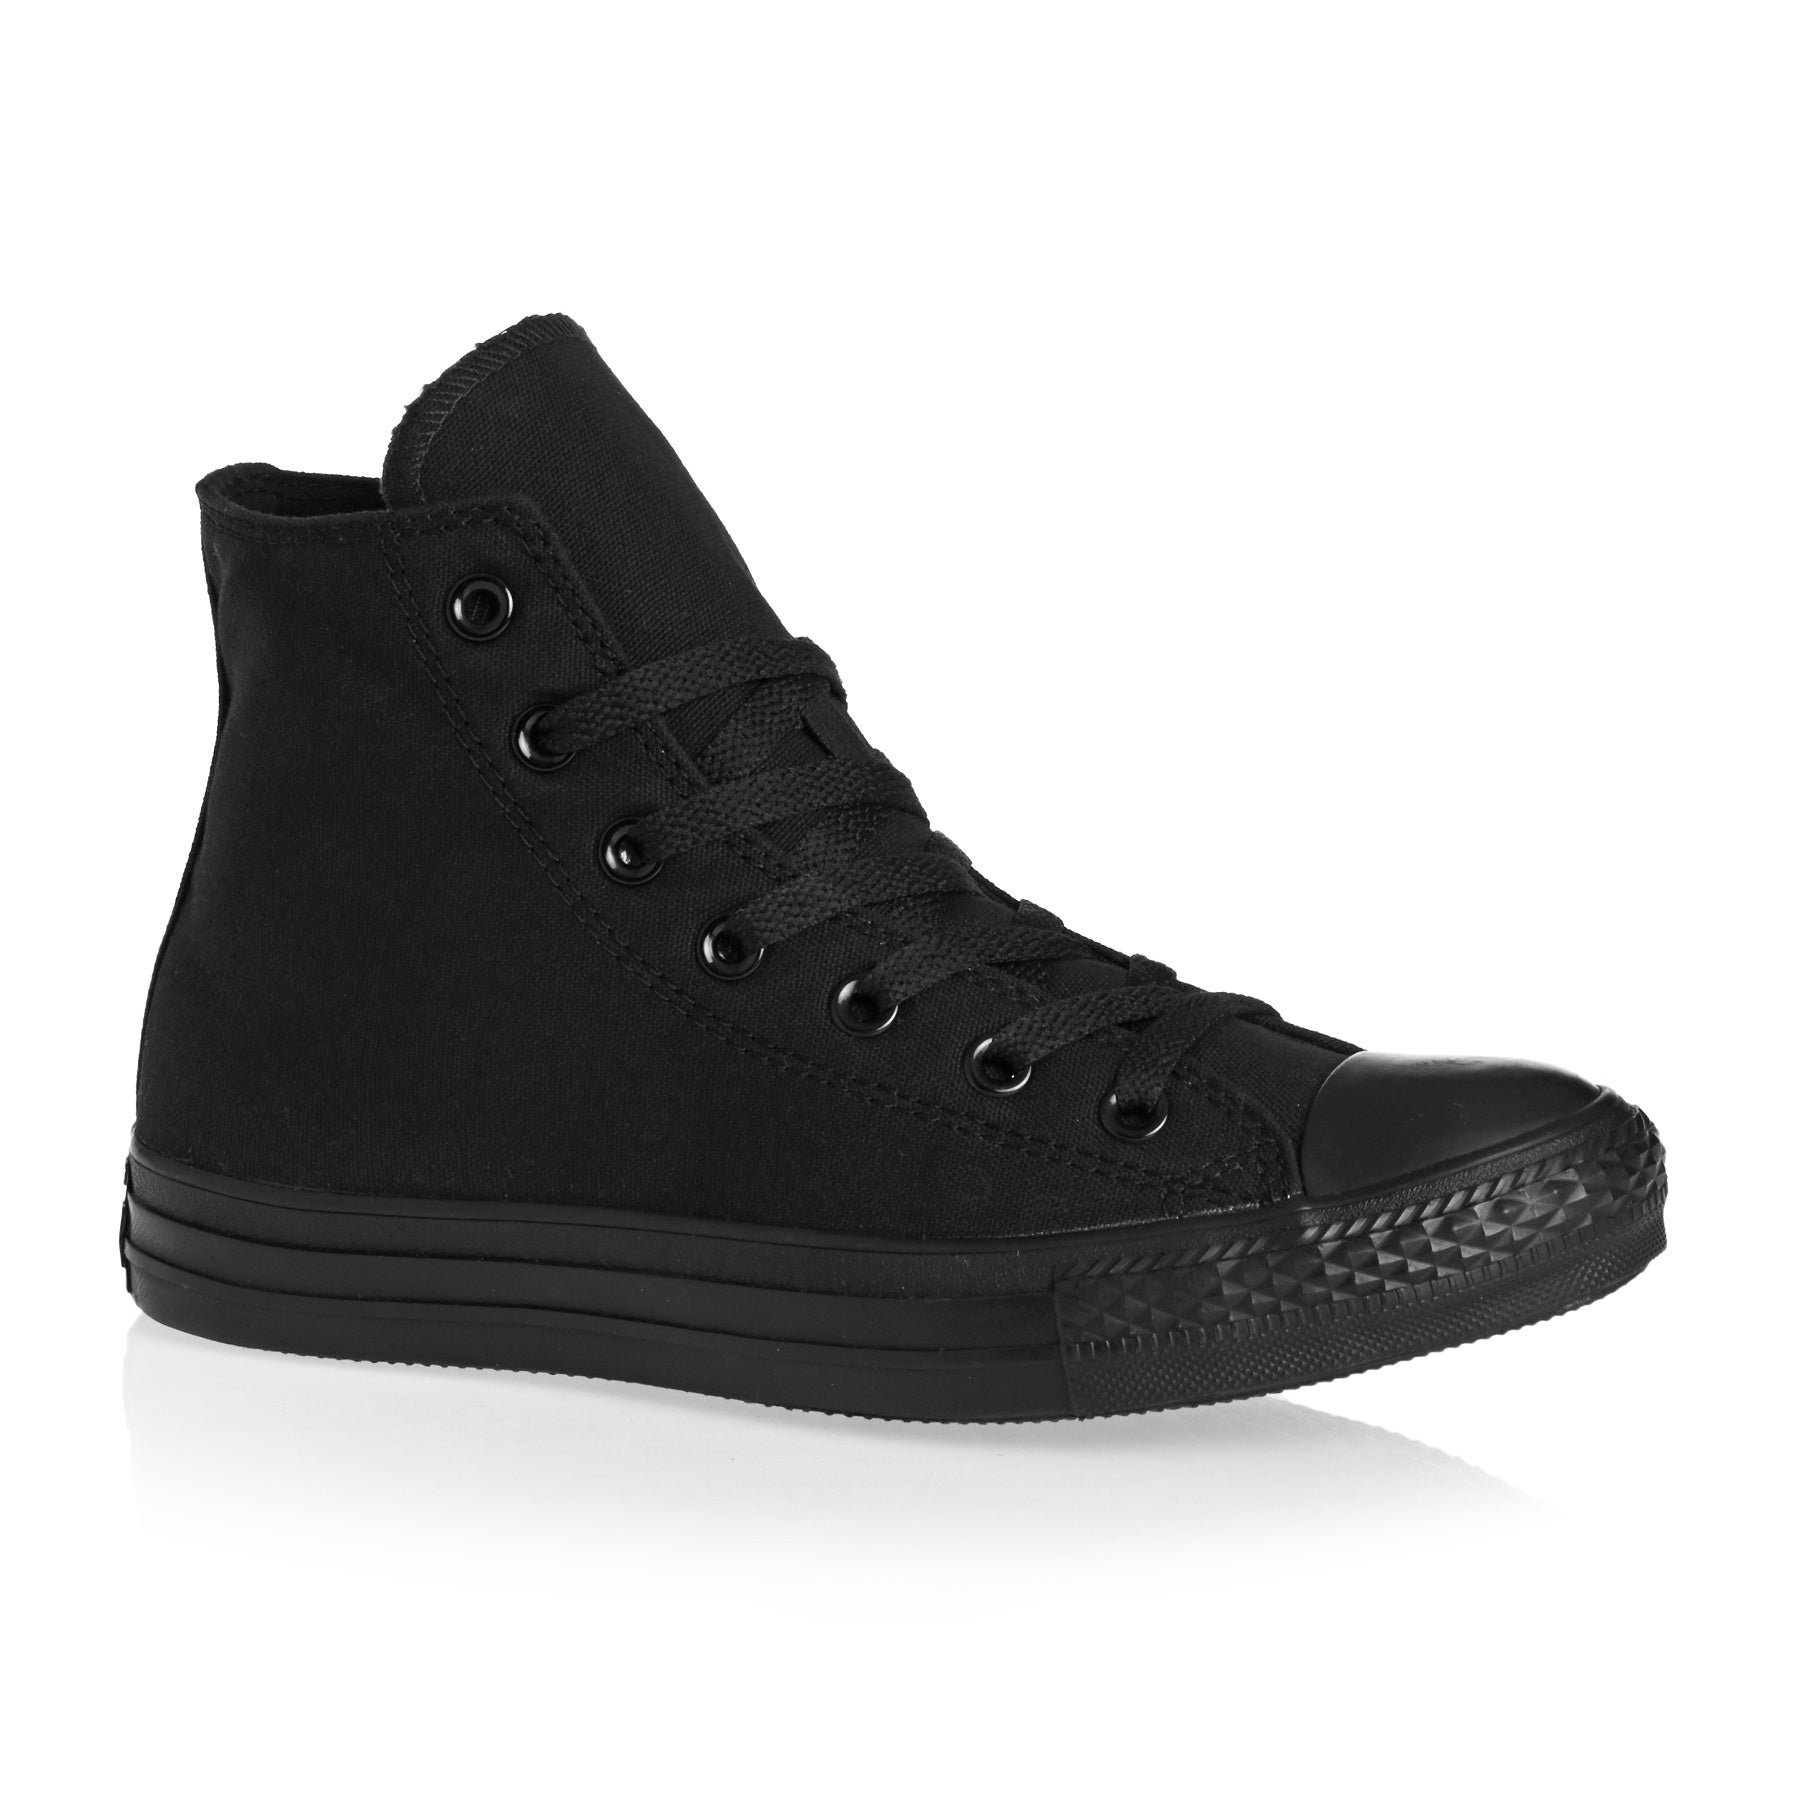 dd4c7202c02 ... coupon code for converse chuck taylor all stars hi shoes 3f580 da89b